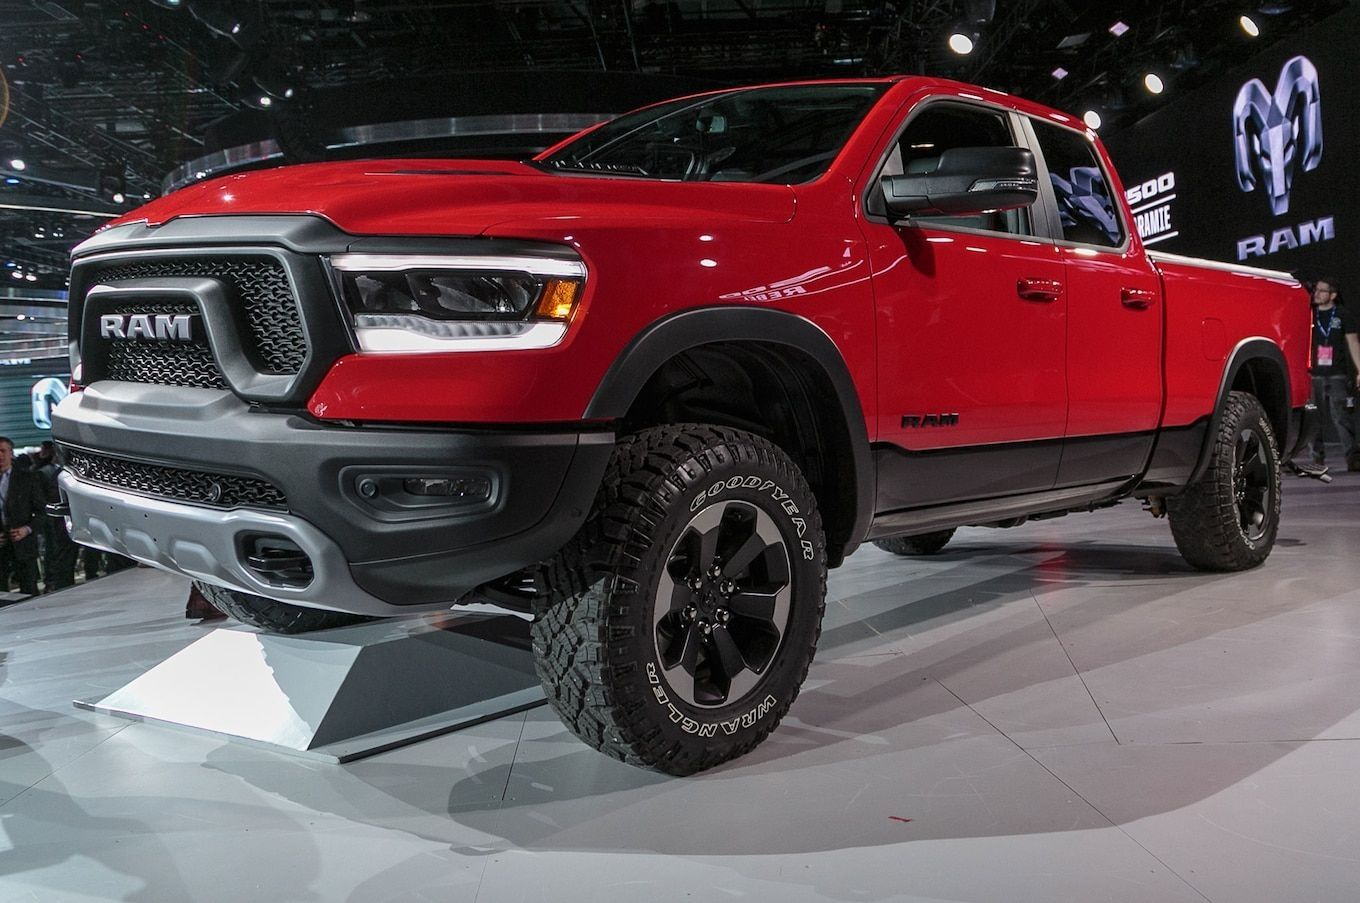 New 2019 Ram 1500 Ecodiesel First Drive Cars Review 2019 Power Wagon Dodge Power Wagon Ford Ranger